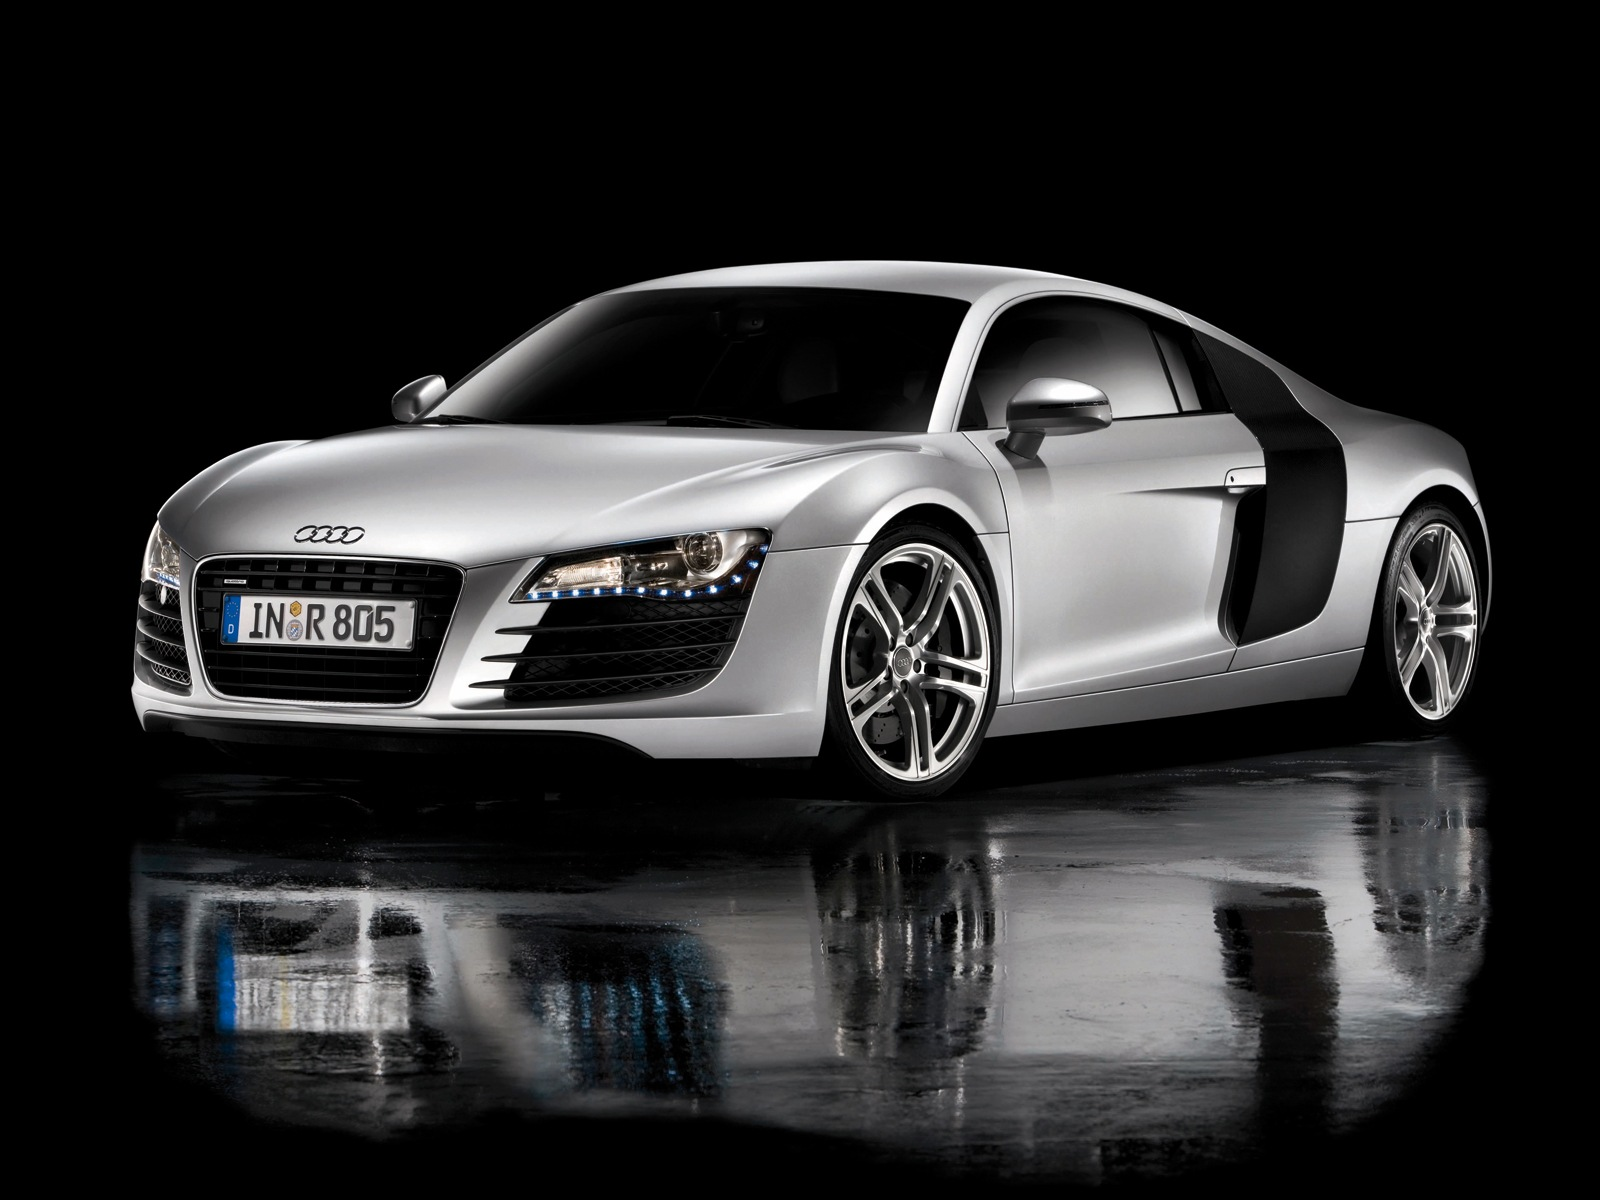 voitures et automobiles audi r8. Black Bedroom Furniture Sets. Home Design Ideas